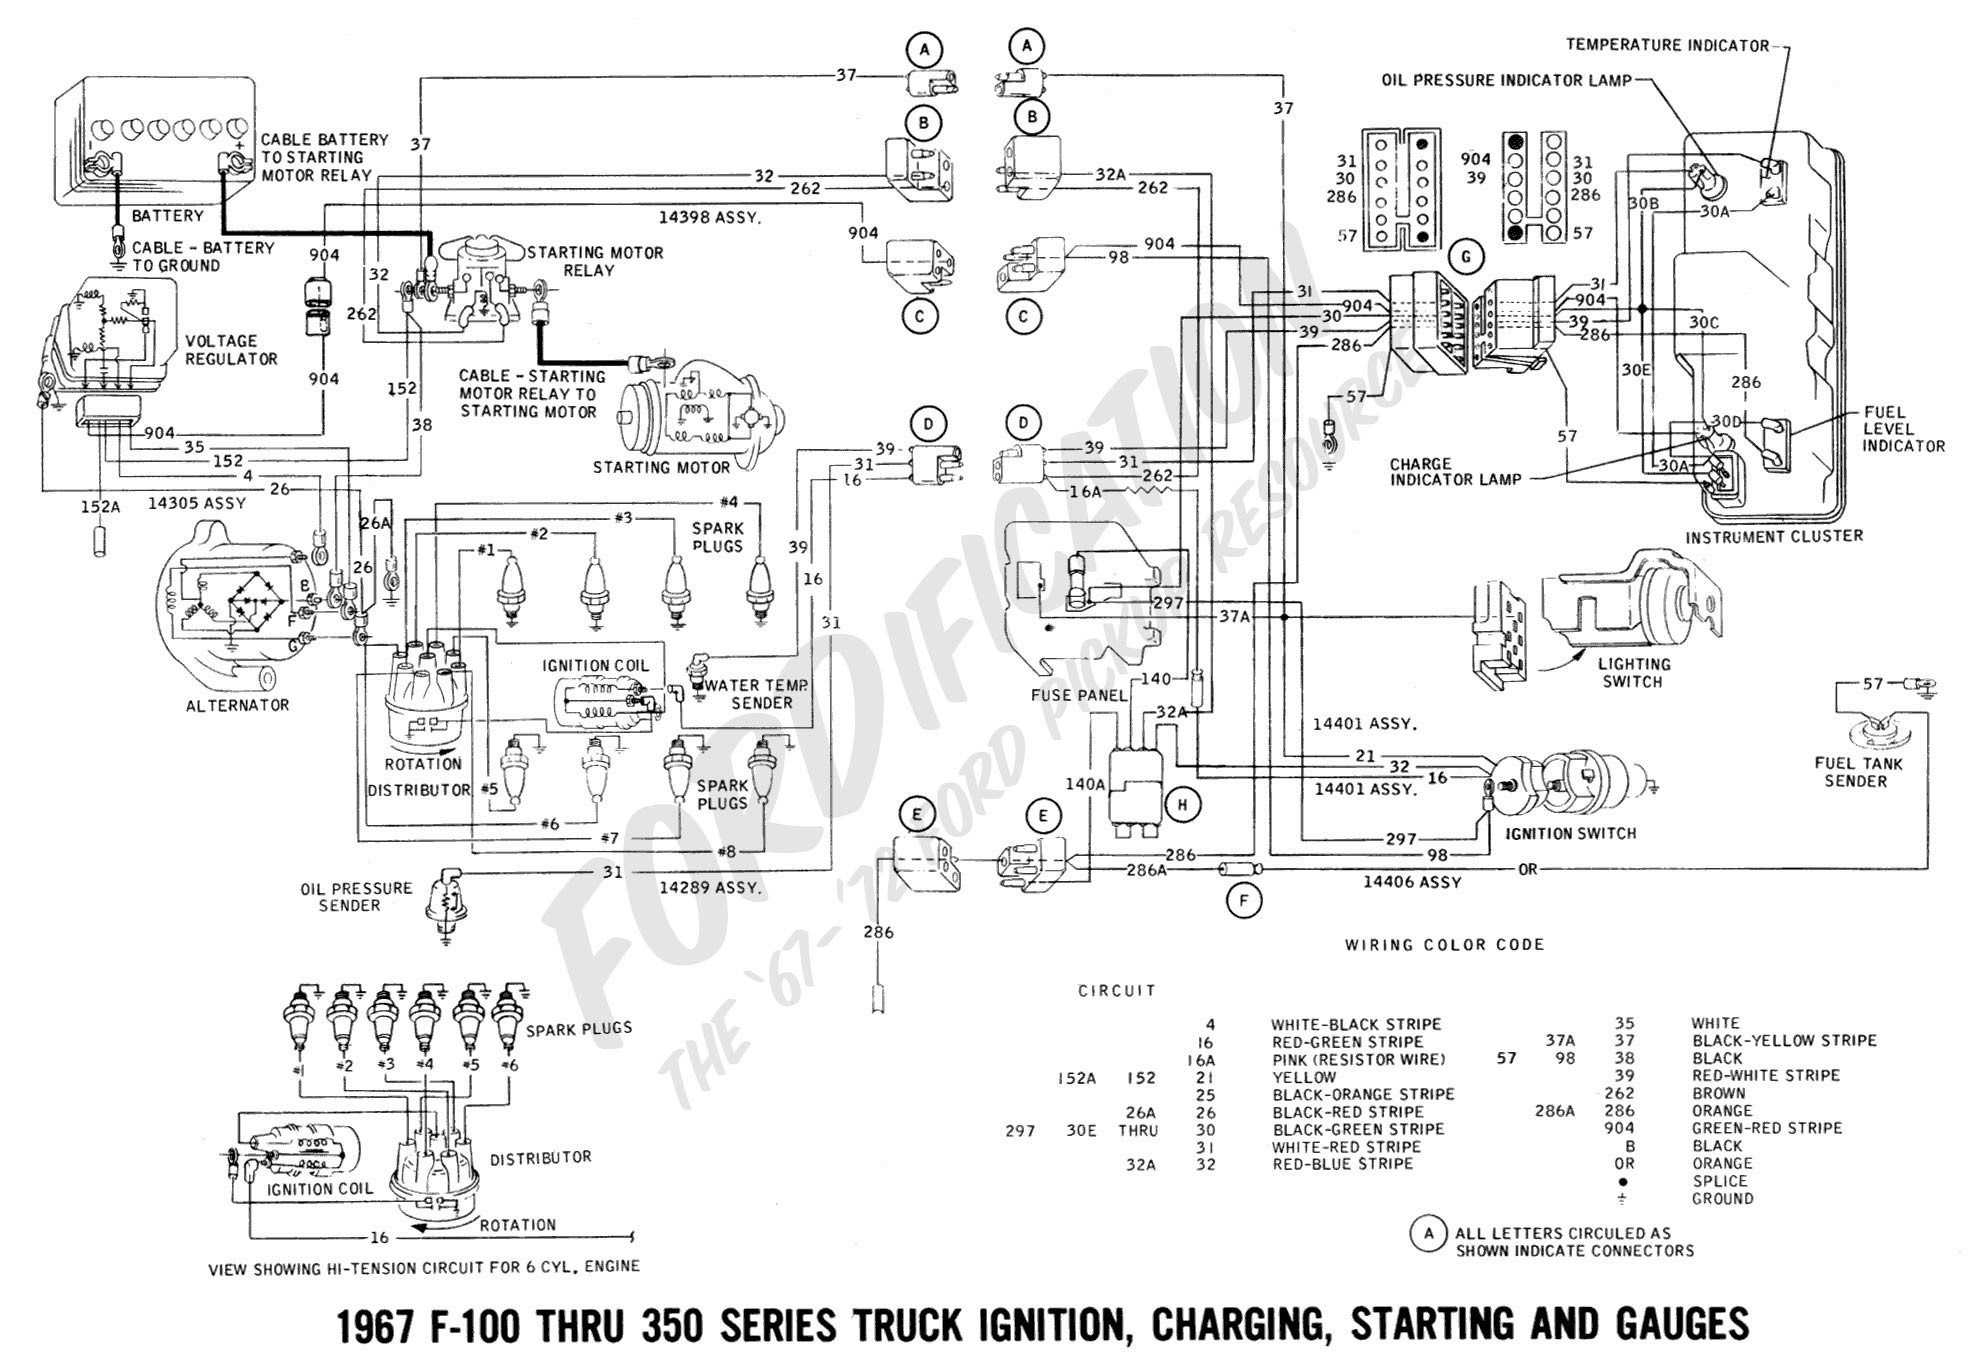 hight resolution of 2002 ford explorer engine diagram 4 0 ford truck technical drawings and schematics section h wiring